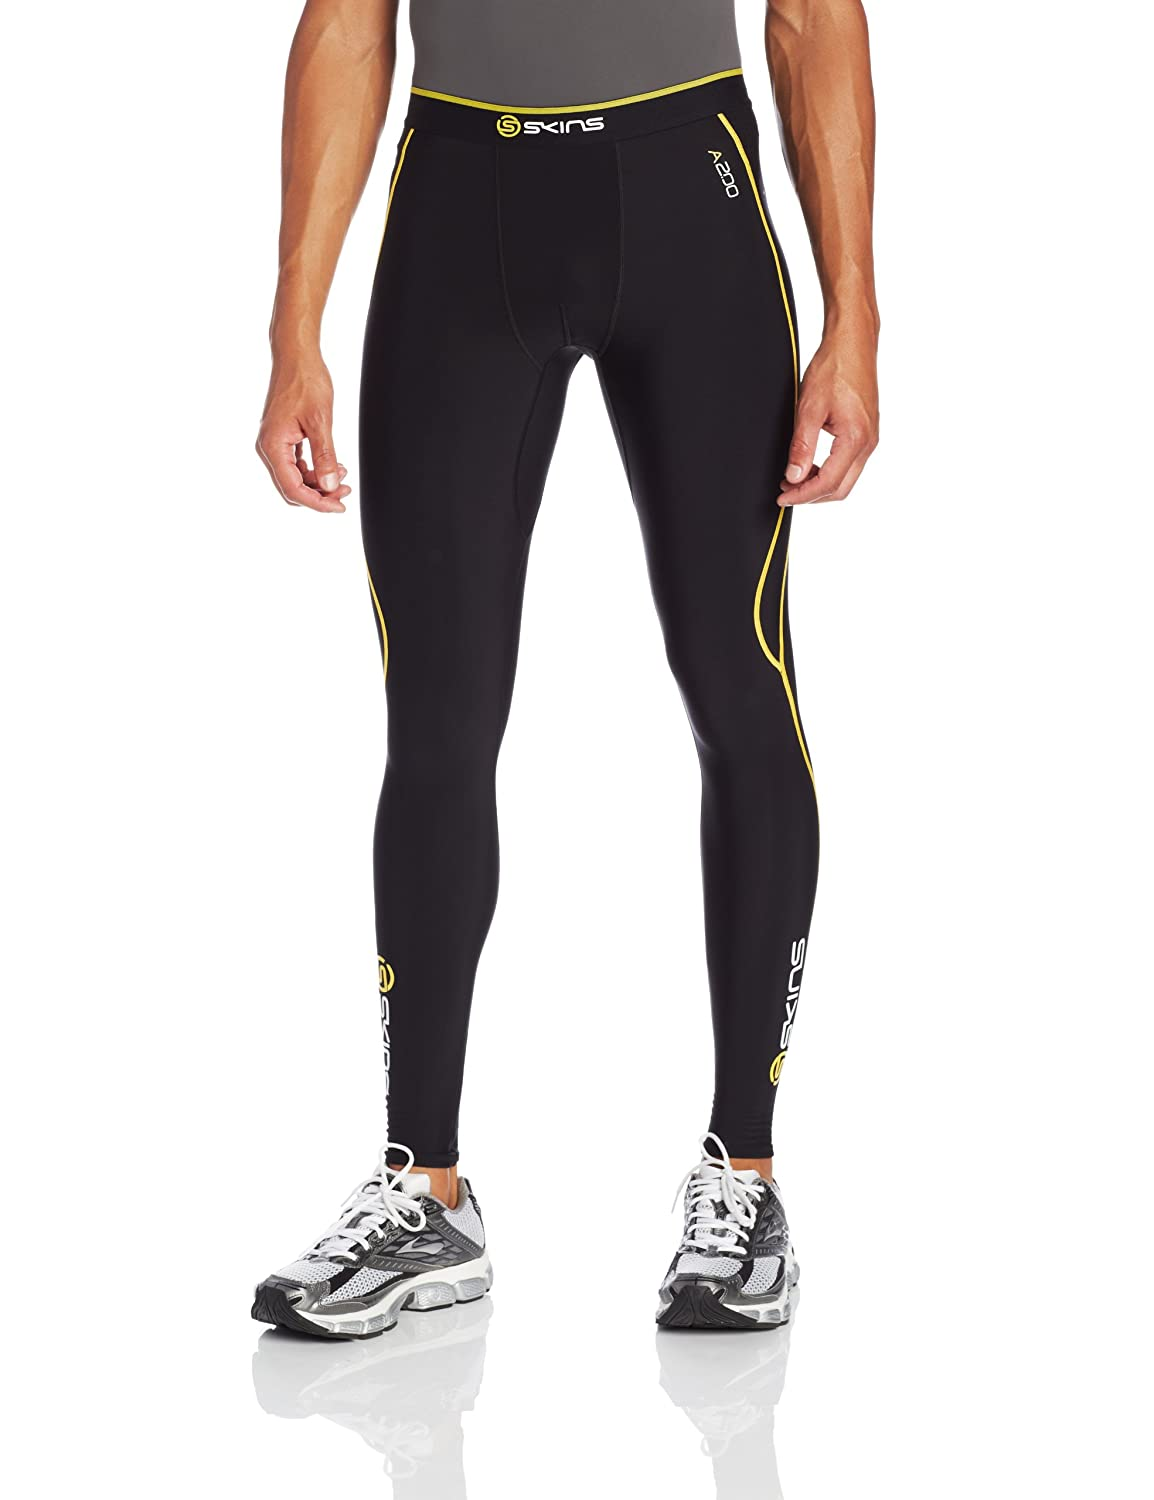 SKINS Men's A200 Thermal Compression Long Tights, Black/Yellow, Small B60052111S